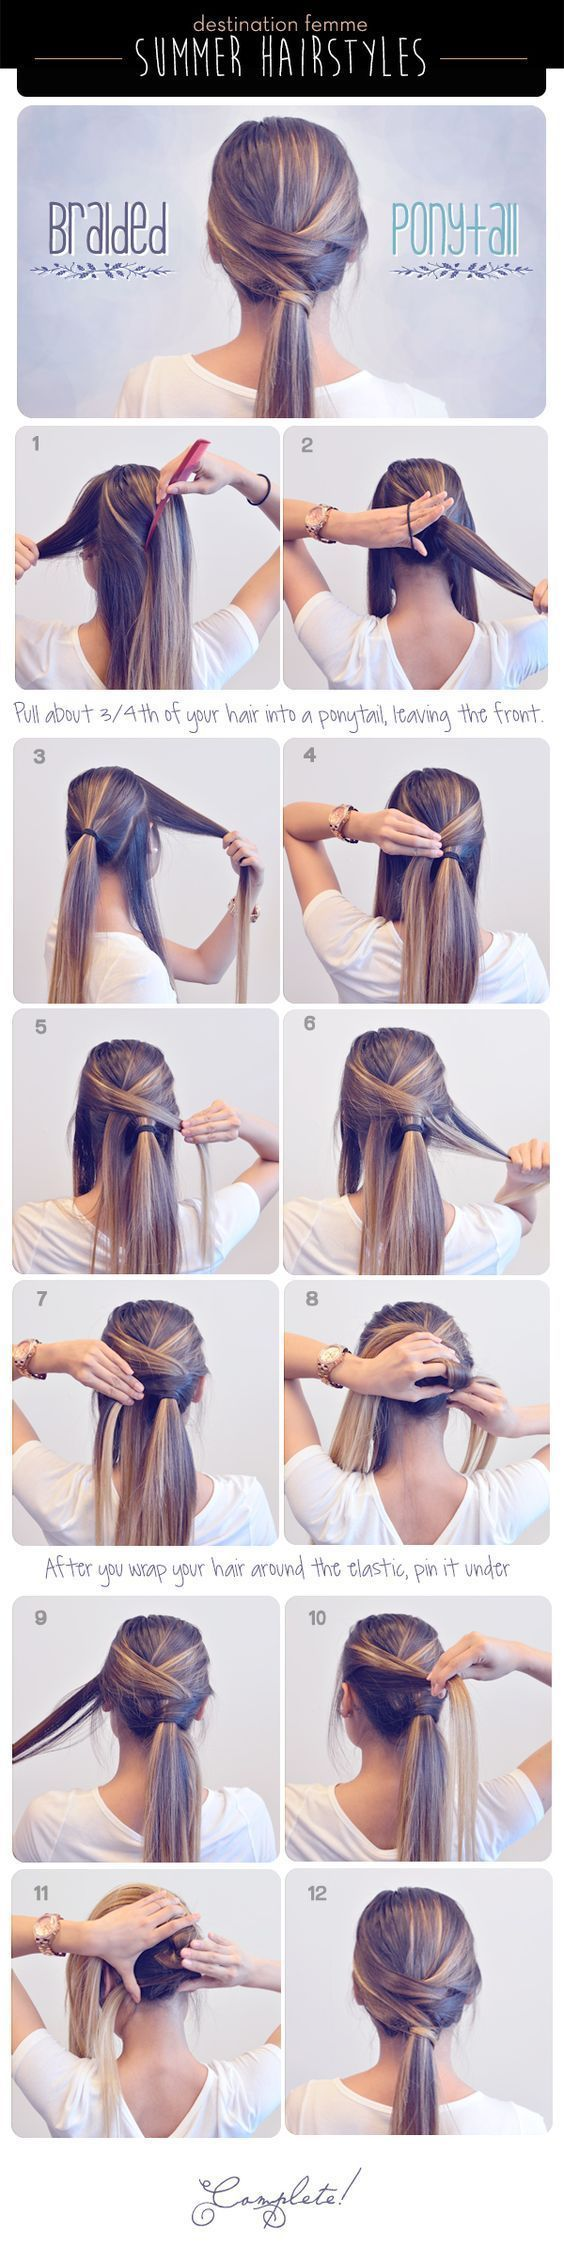 nice Summer Braided Hair Tutorial by http://www.dana-haircuts.xyz/hair-tutorials/summer-braided-hair-tutorial/